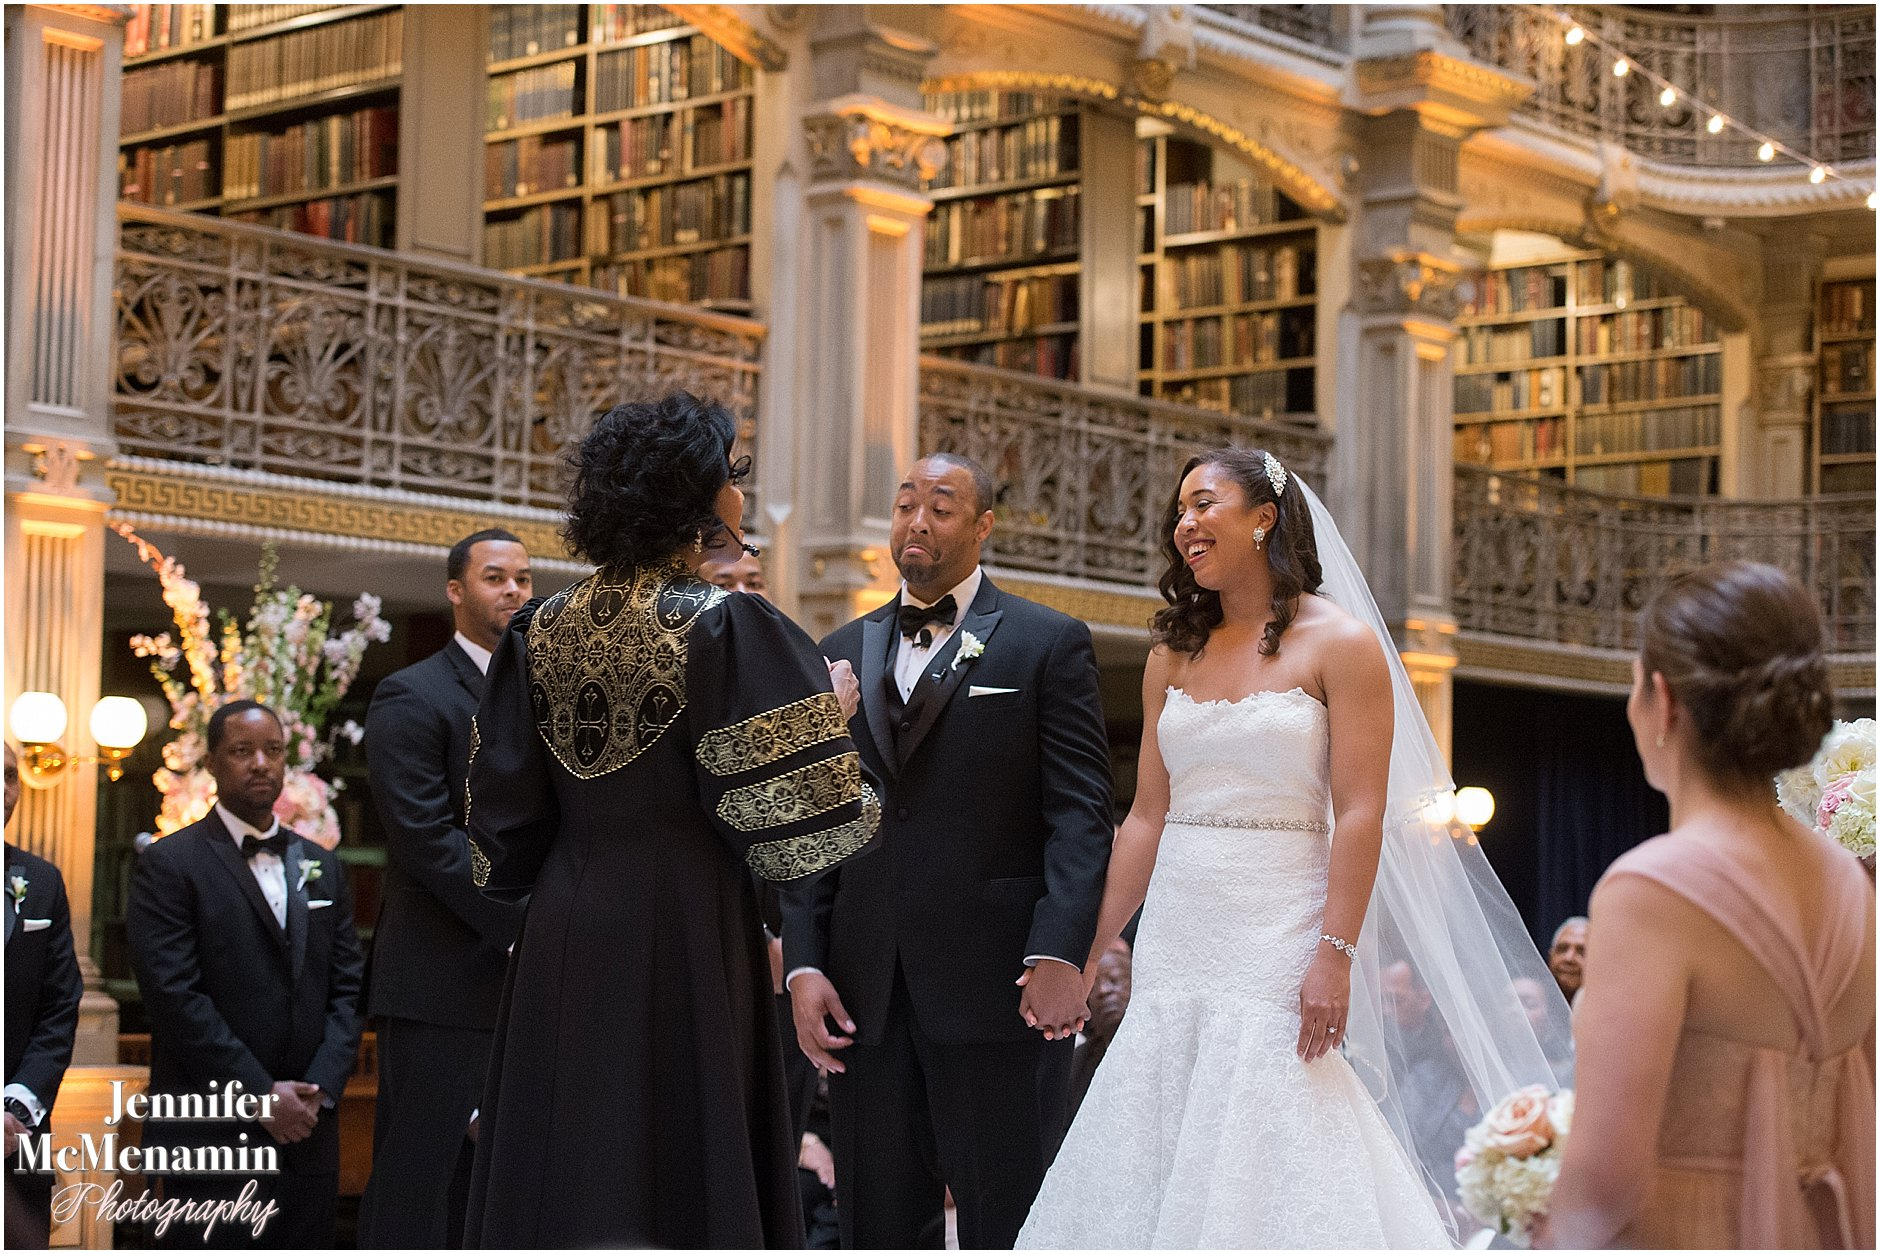 030-Peabody-Library-Wedding_WilsonPatterson_01610-0330_Jennifer-McMenamin-Photography